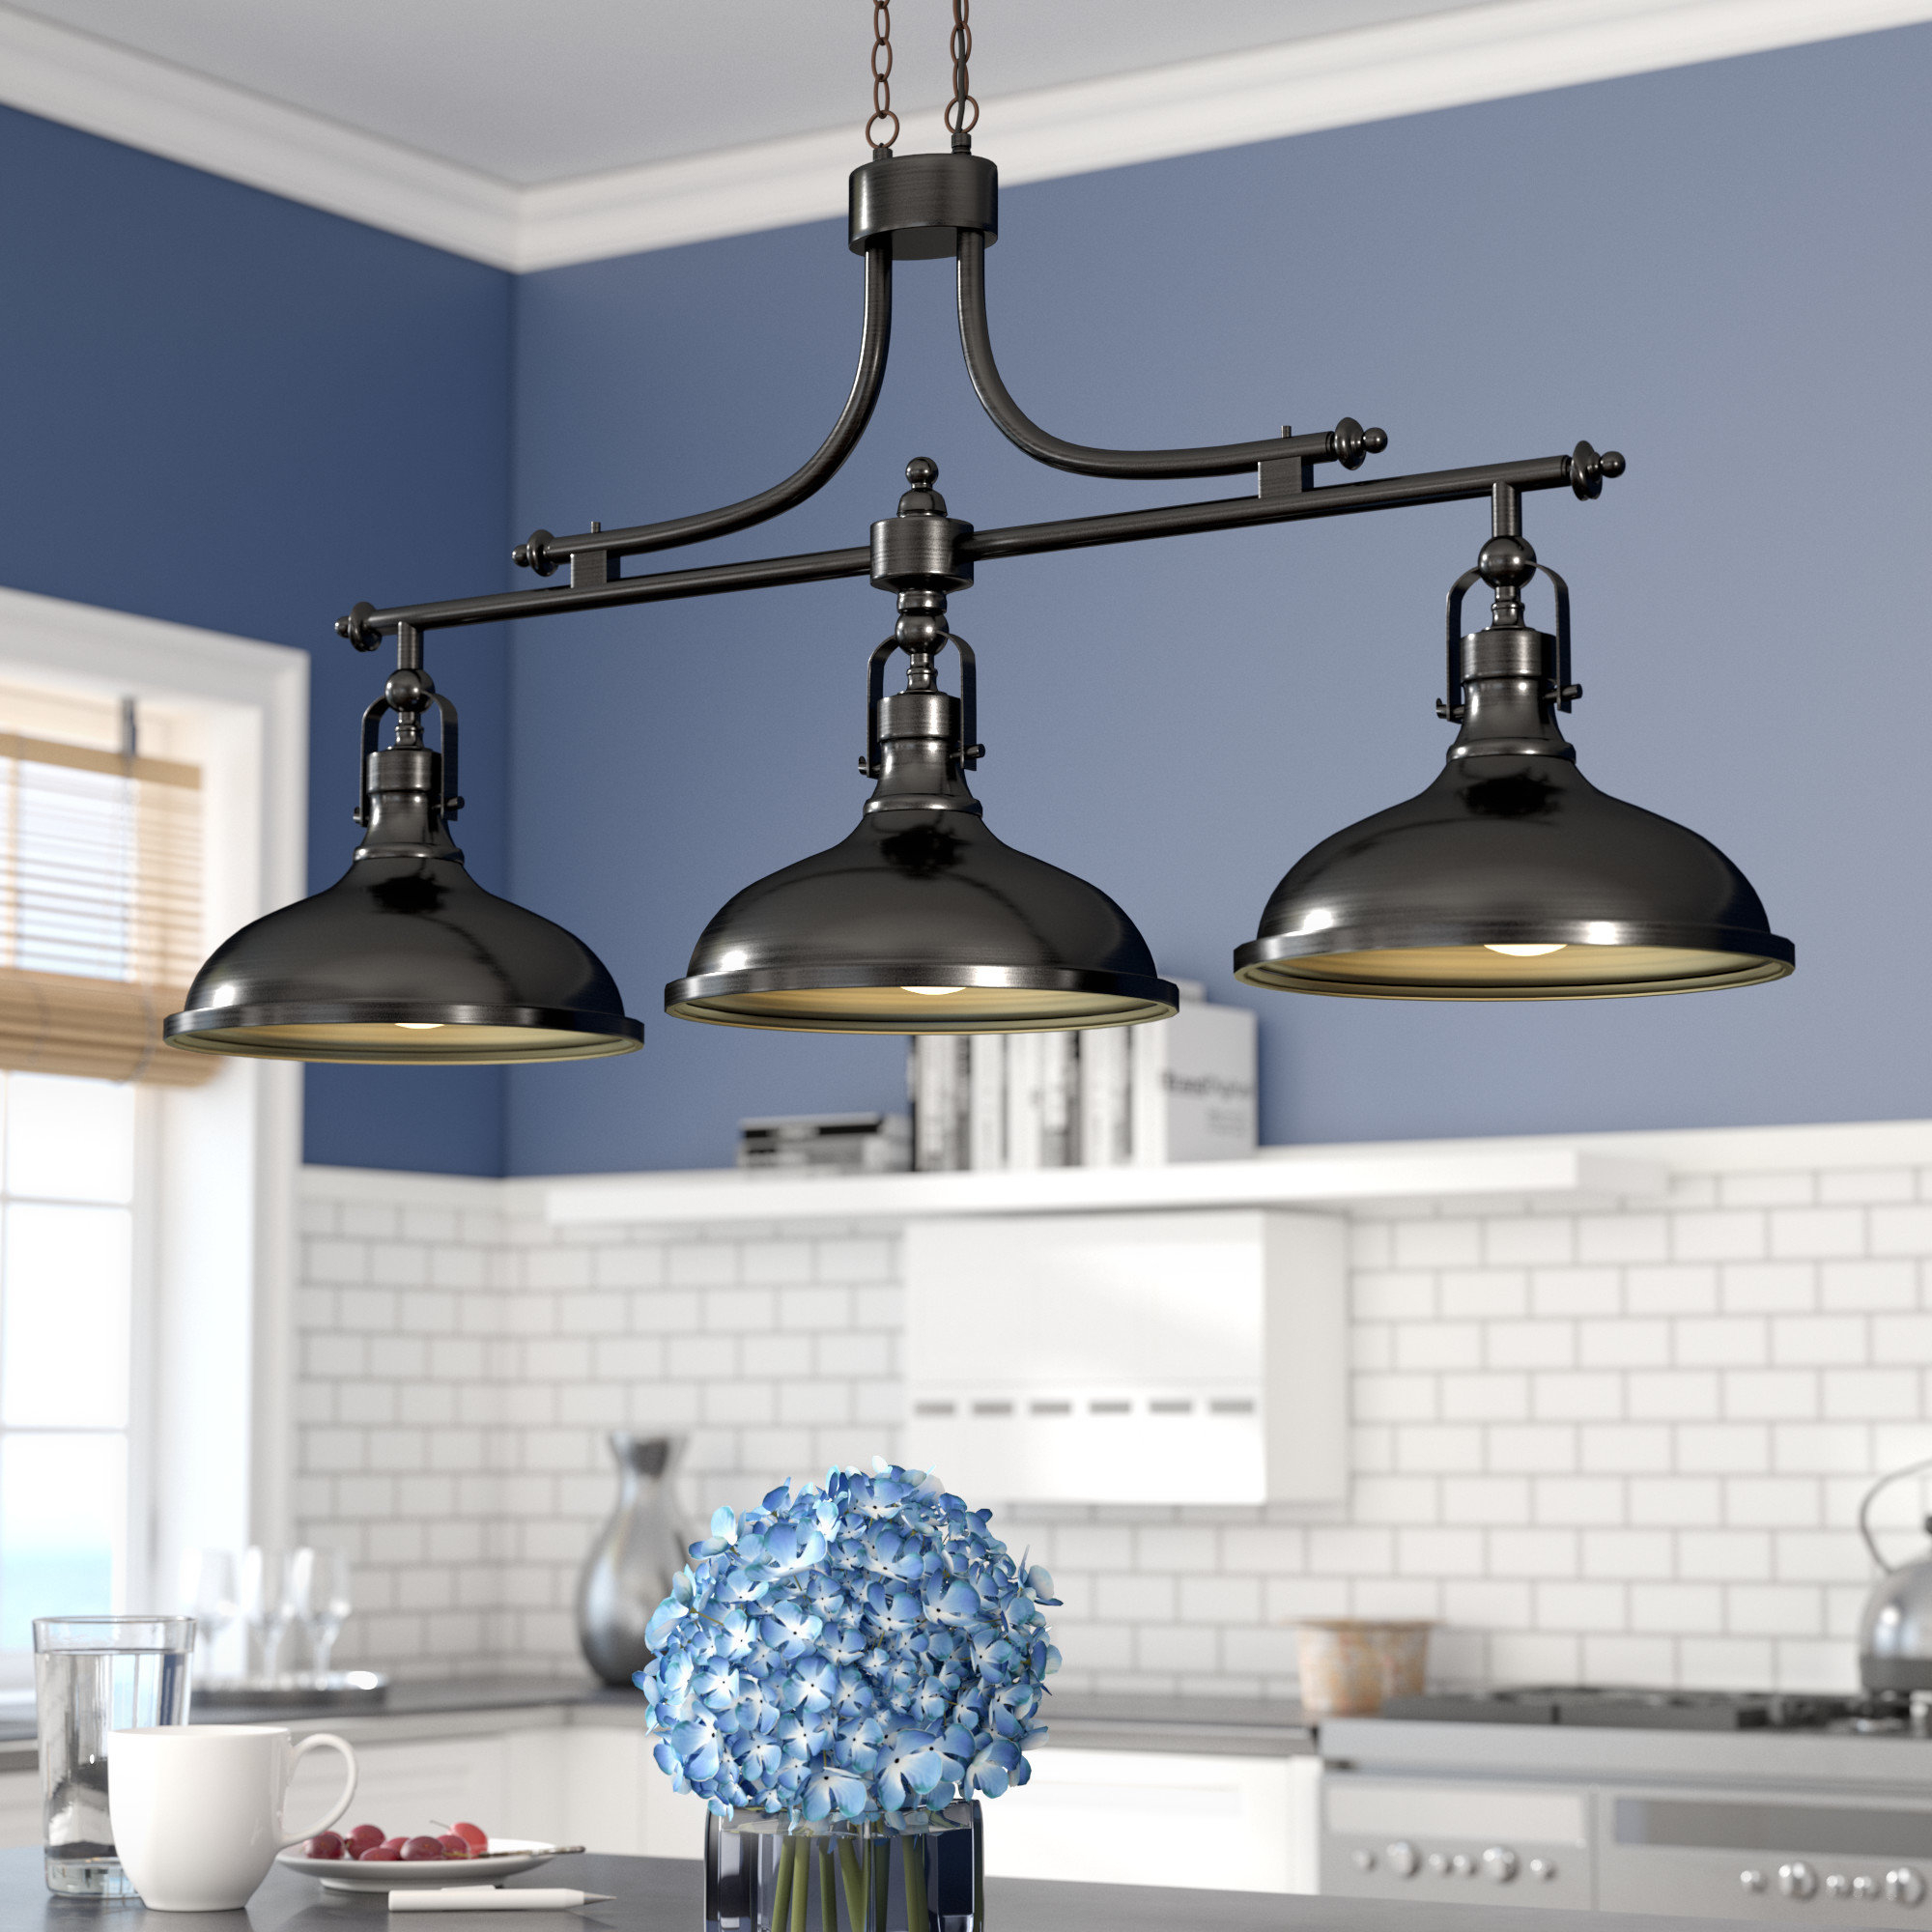 Kitchen Island Pendant Lighting Fixtures   Gnubies Pertaining To Ariel 2 Light Kitchen Island Dome Pendants (Photo 7 of 30)